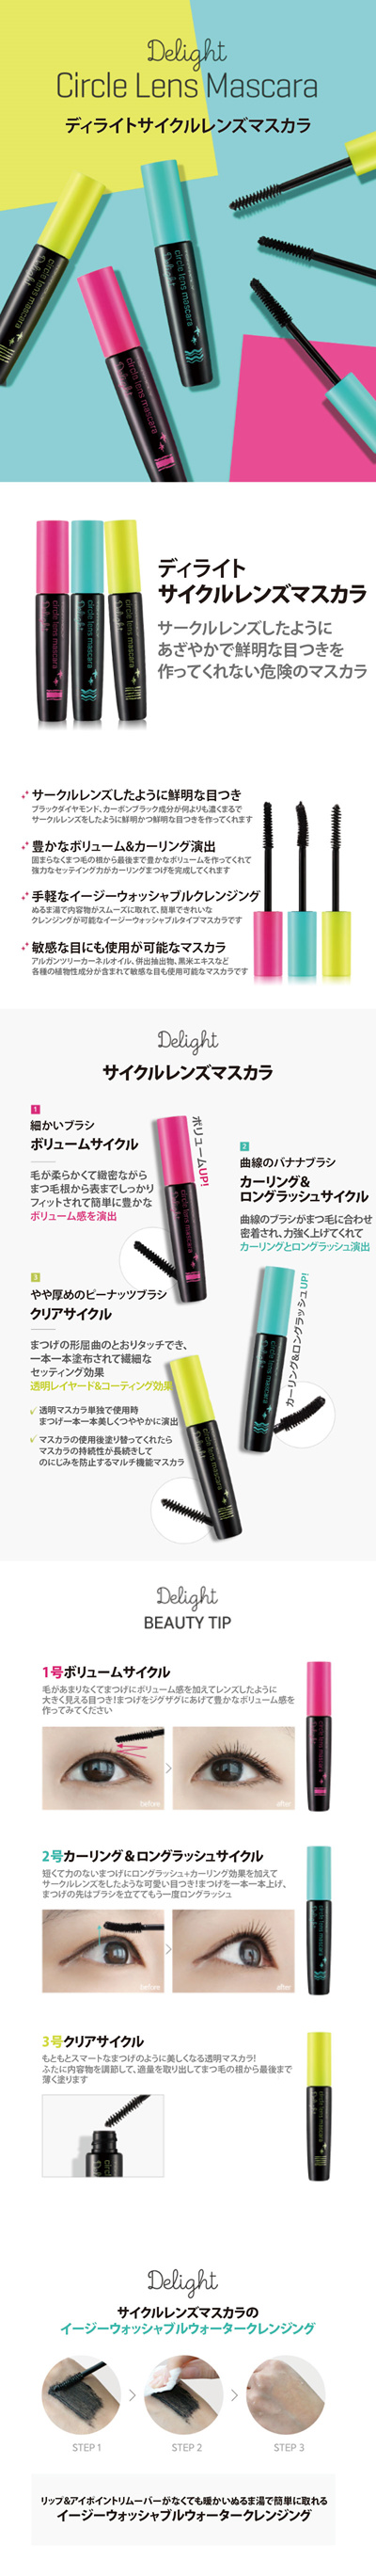 Lens Cleaner Search Results High To Low Items Now On Sale At Sedot Komedo 4 In 1 Power Perfect Pore Facial Cleanser Tony Molly Tonymoly Circle Mascara